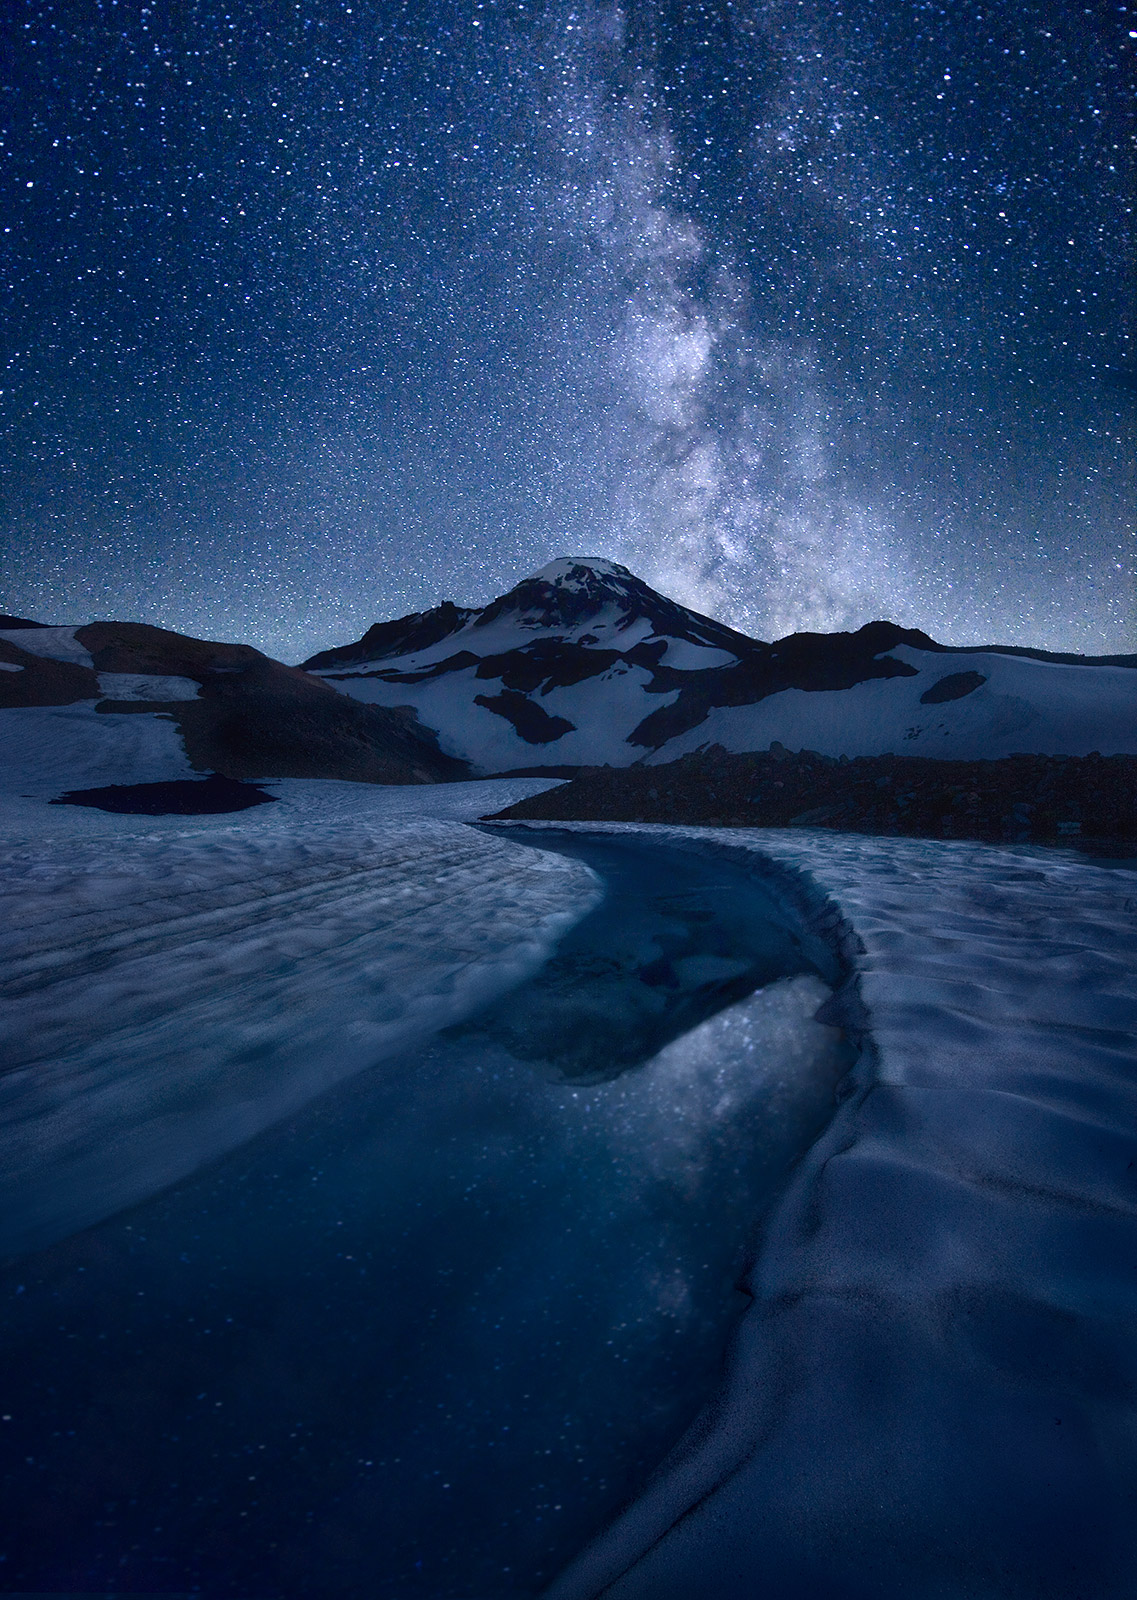 South Sister, Oregon, Peak, Milky Way, Night, Ice, Melt, Reflection, photo